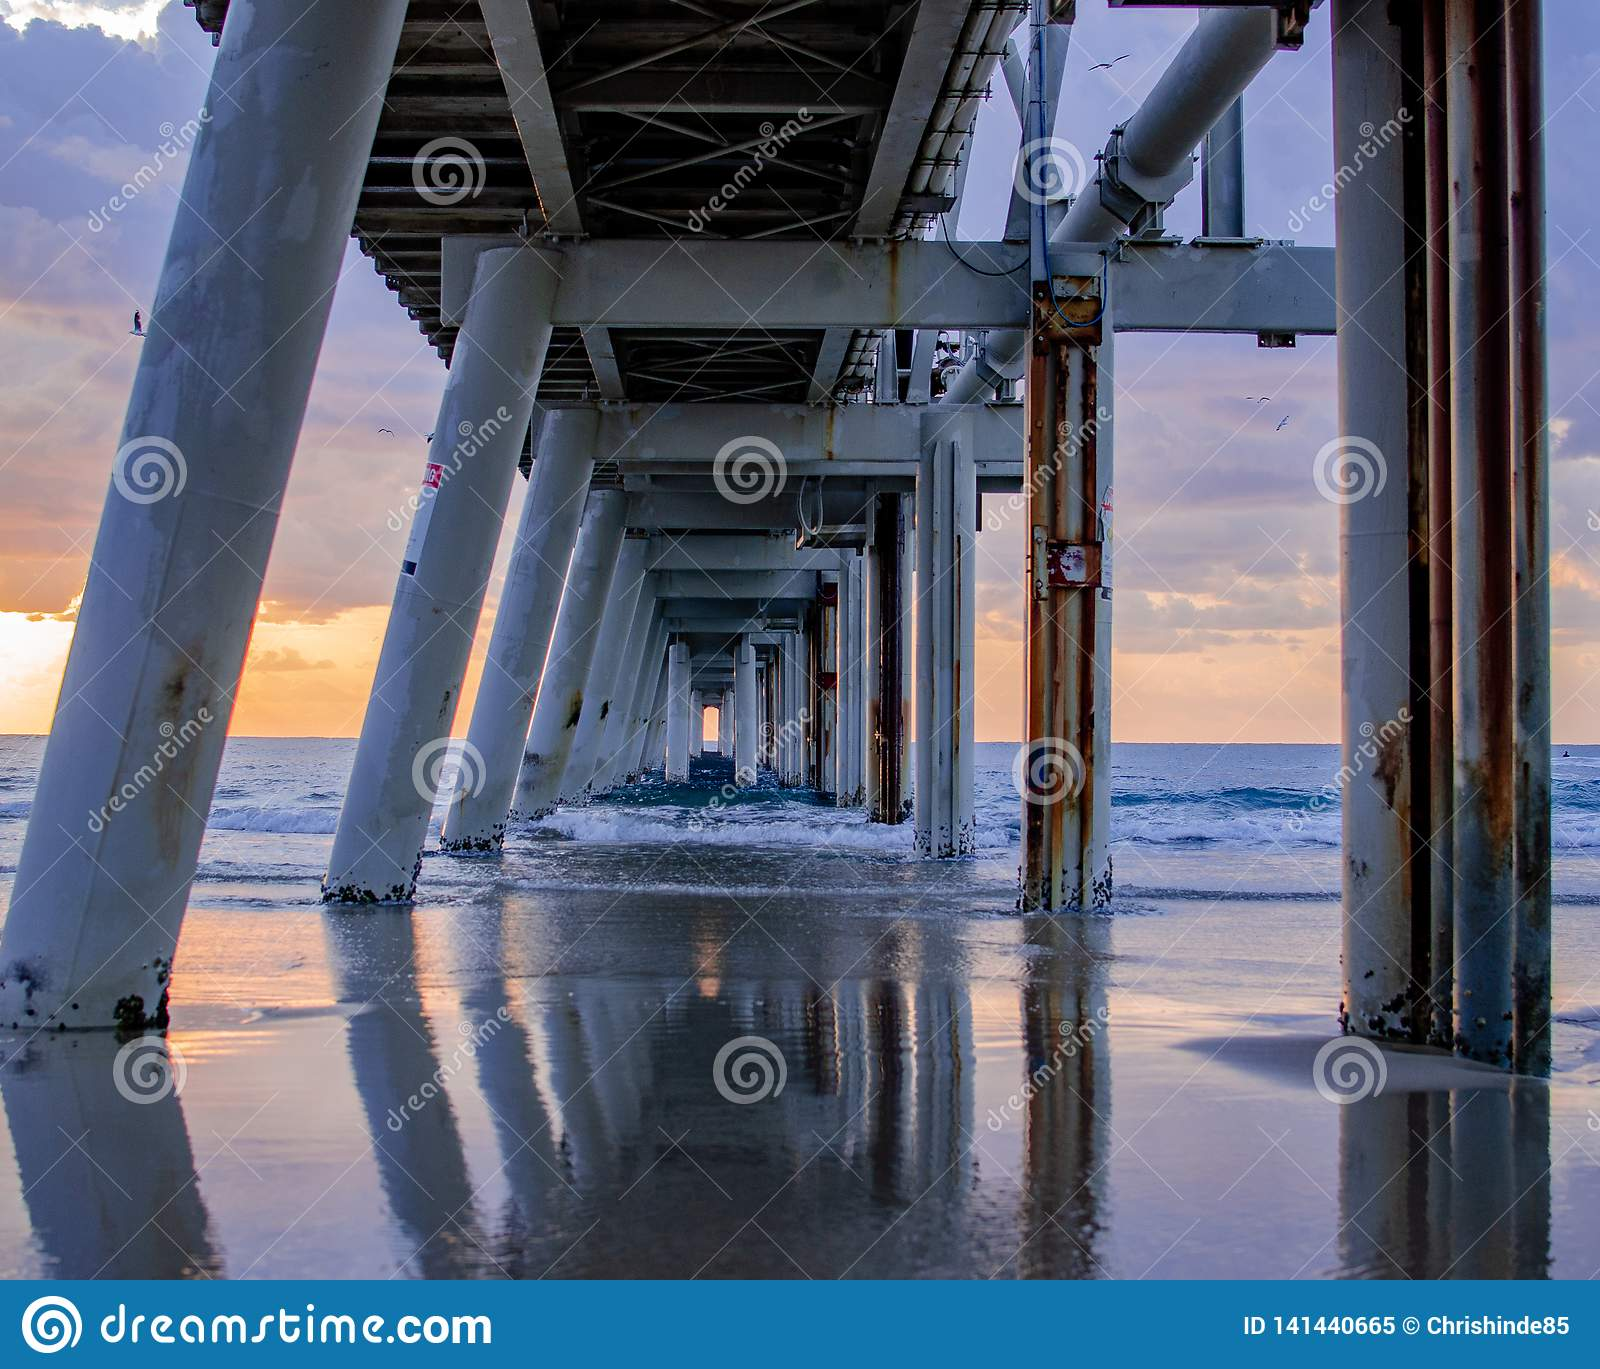 Underneath a sand jetty